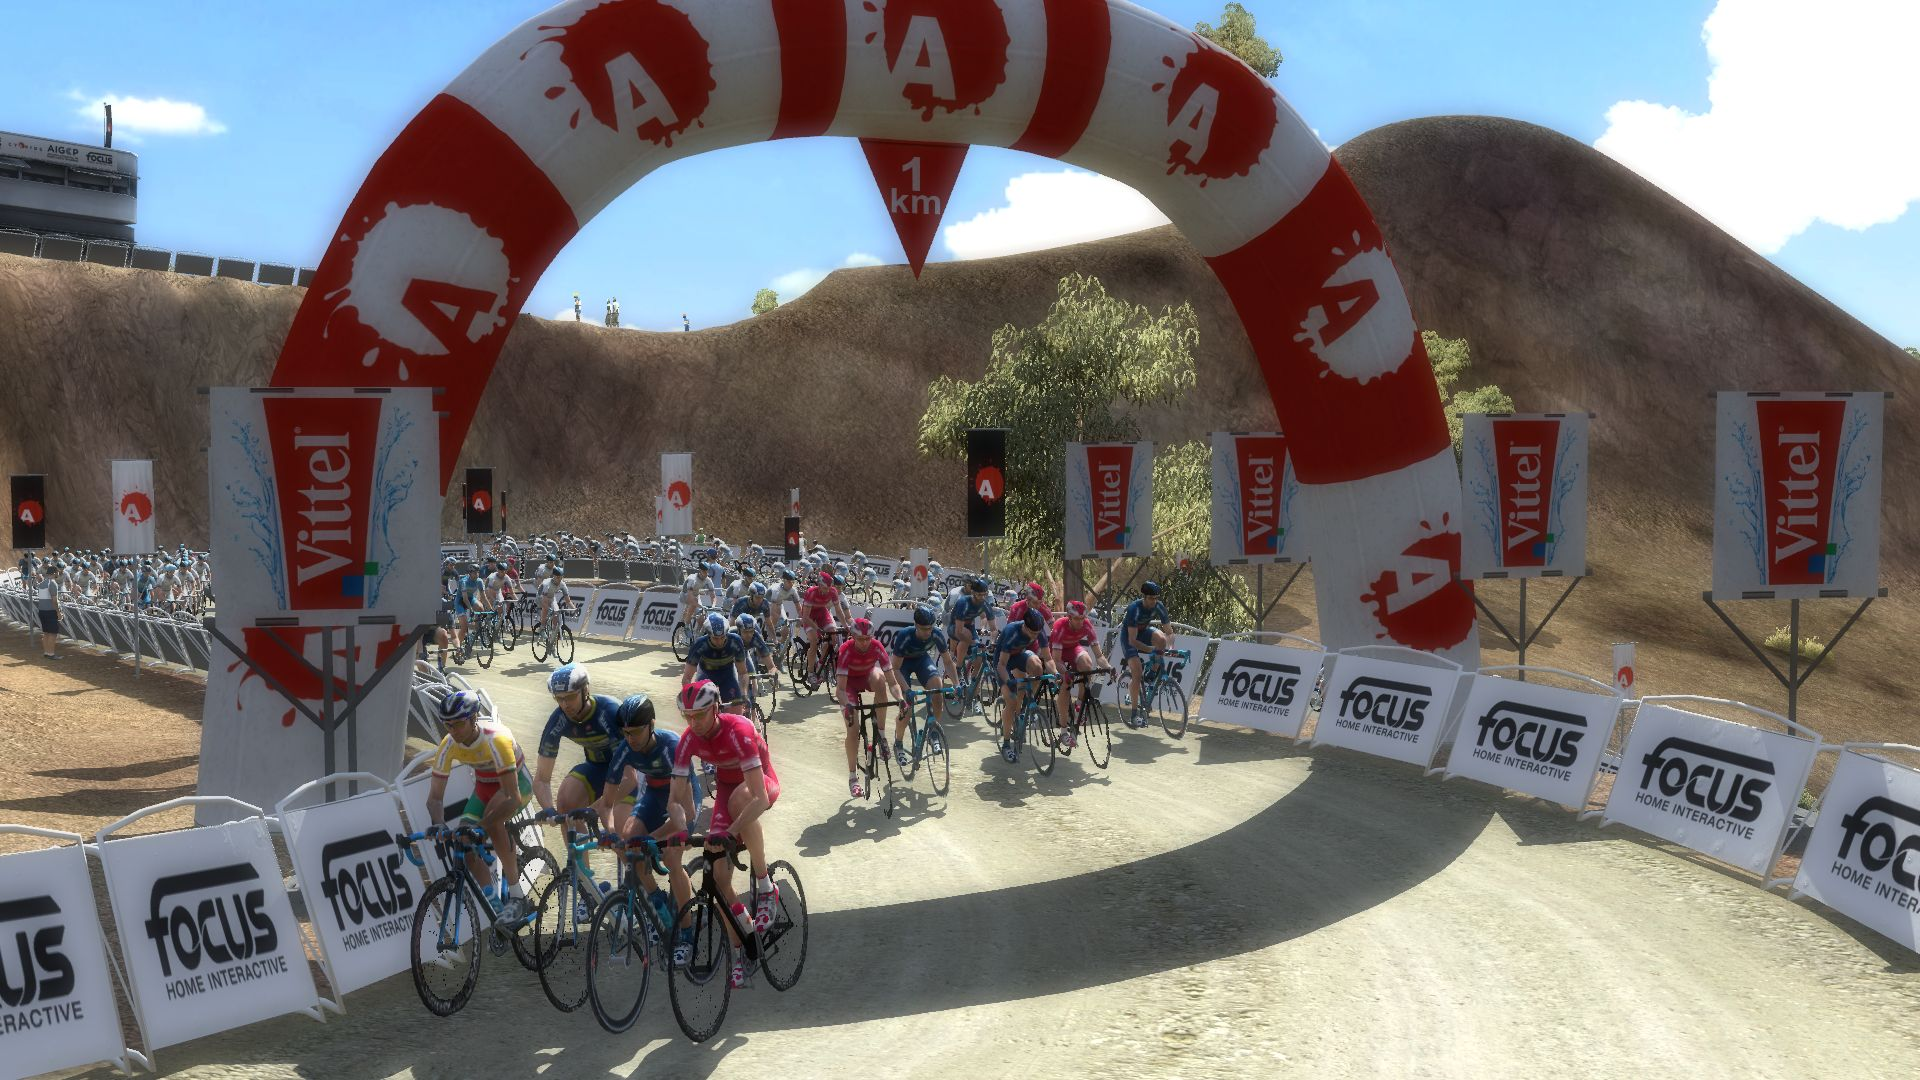 pcmdaily.com/images/mg/2019/Races/Other/NC/ETH/ETHRR%203.jpg